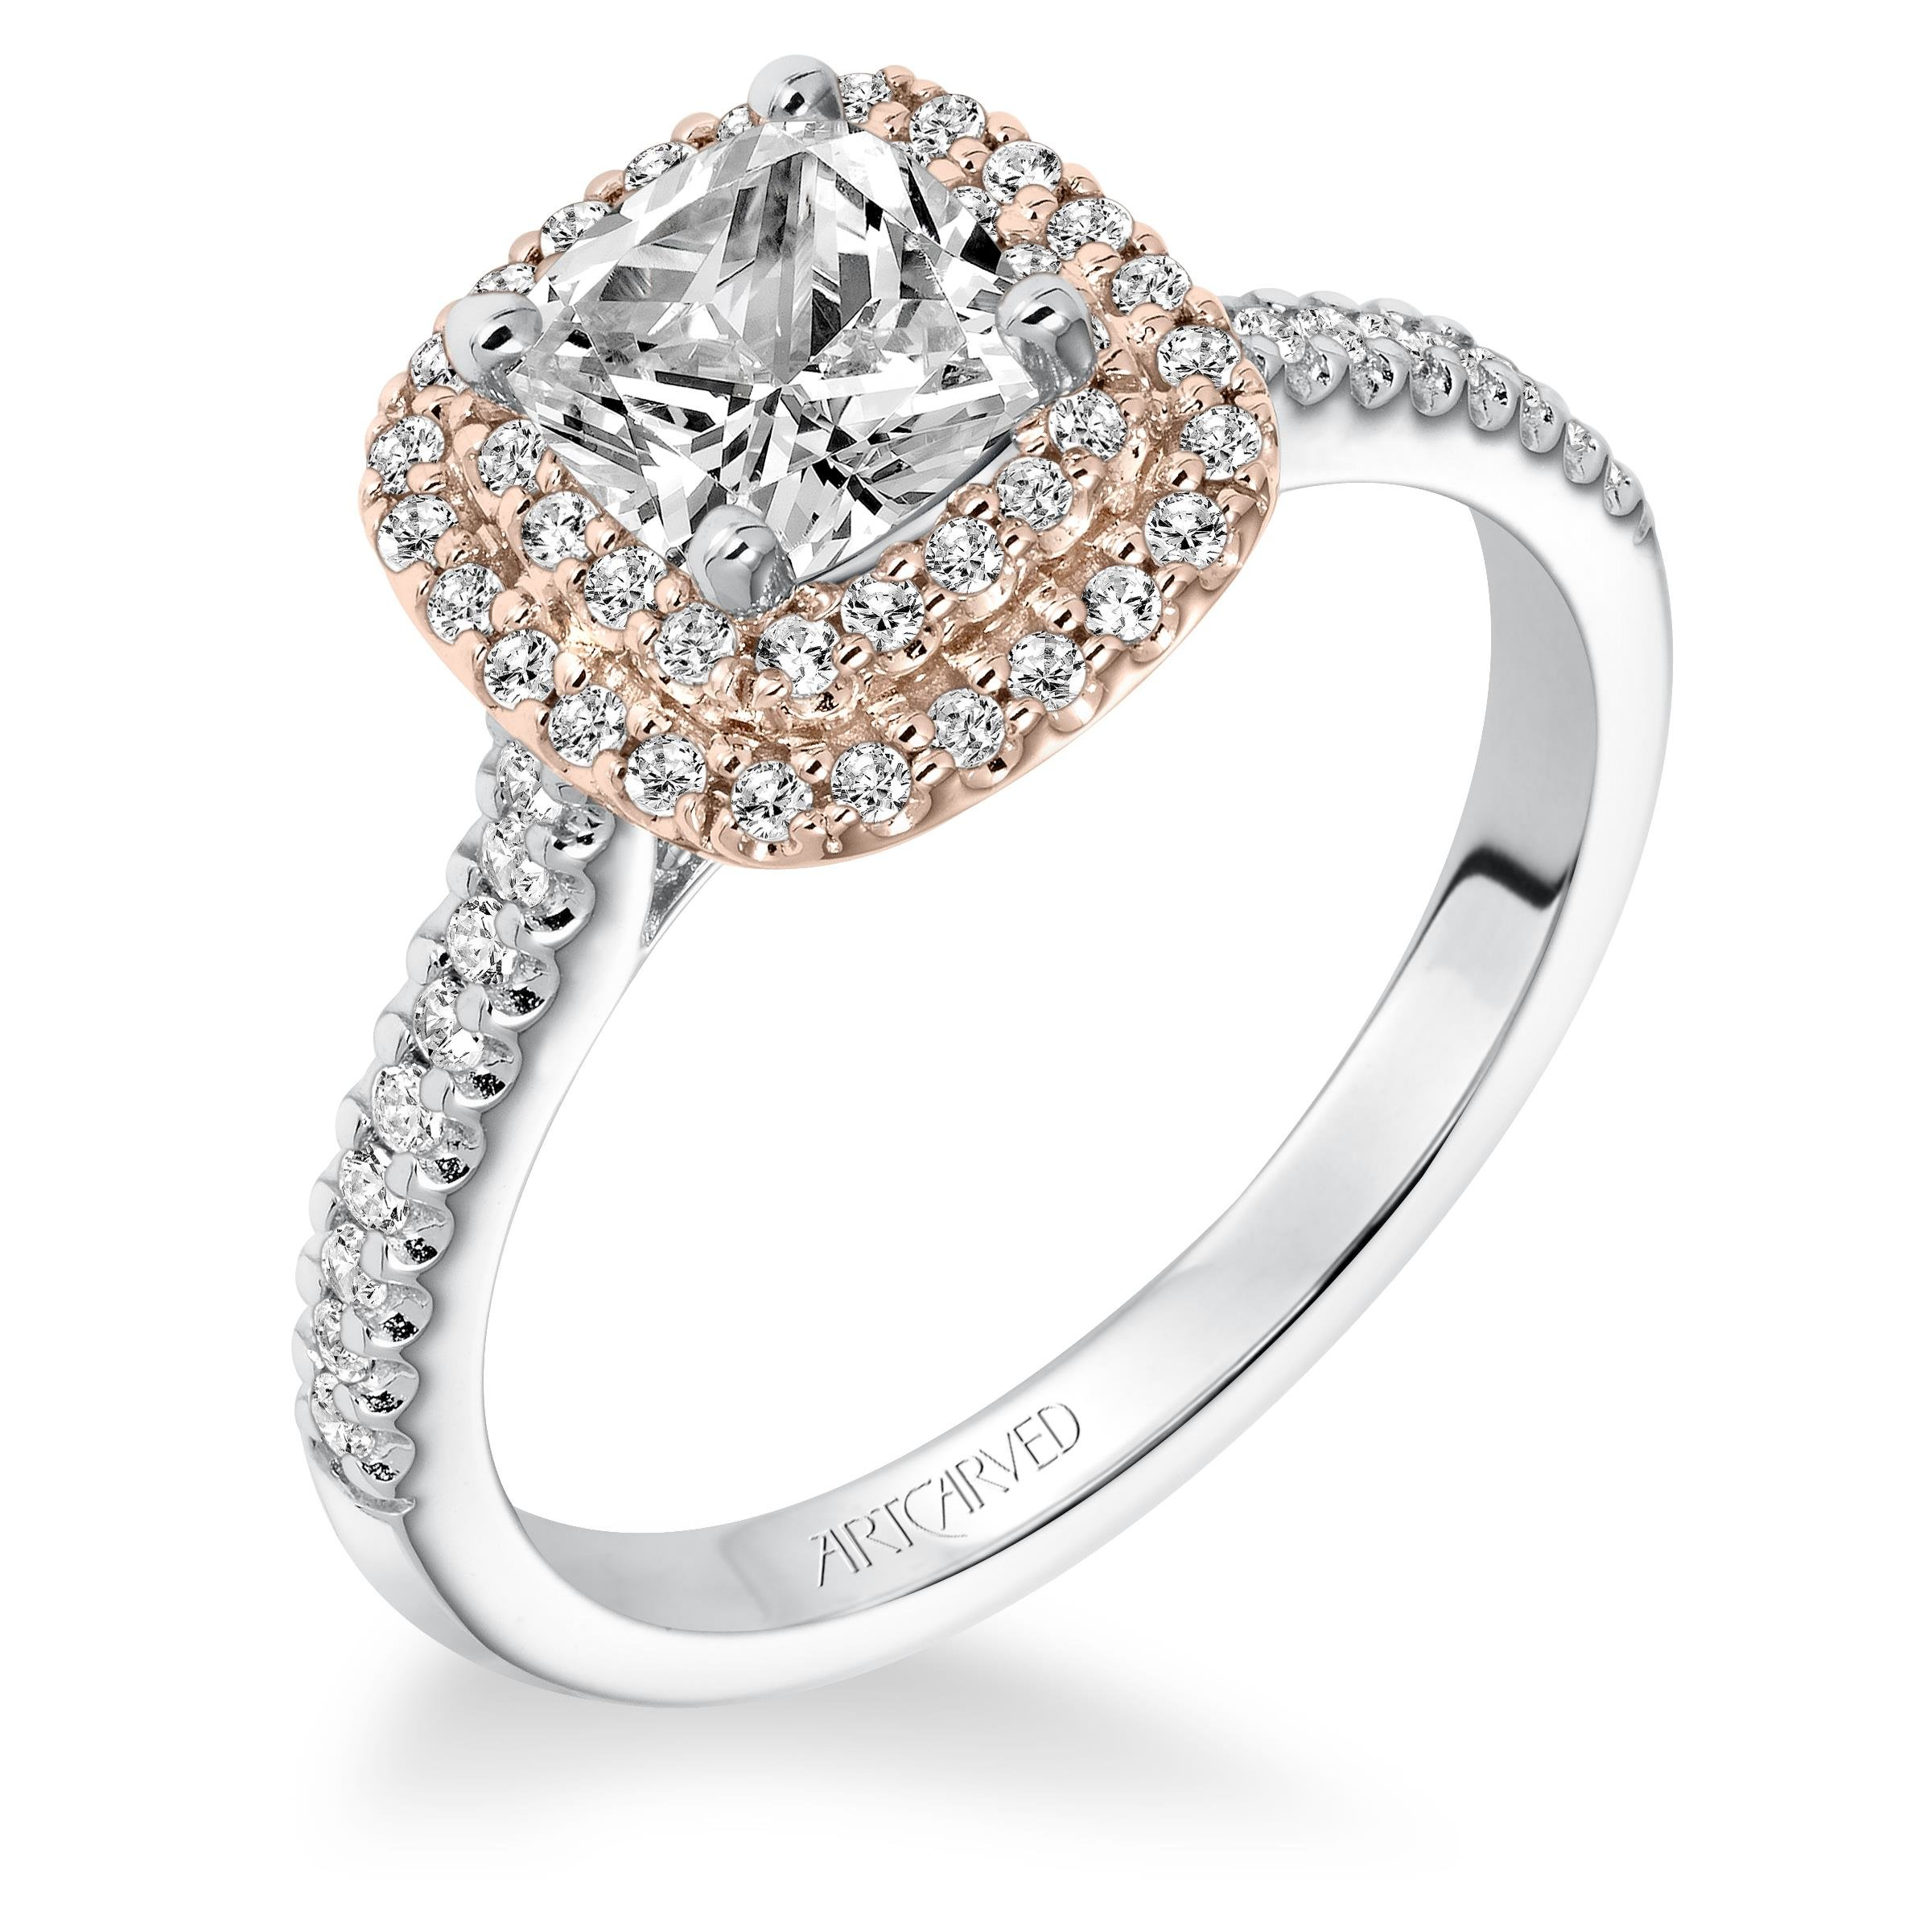 5b015eaa734 ArtCarved Double Halo Rose Gold Diamond Engagement Ring. Designer ...